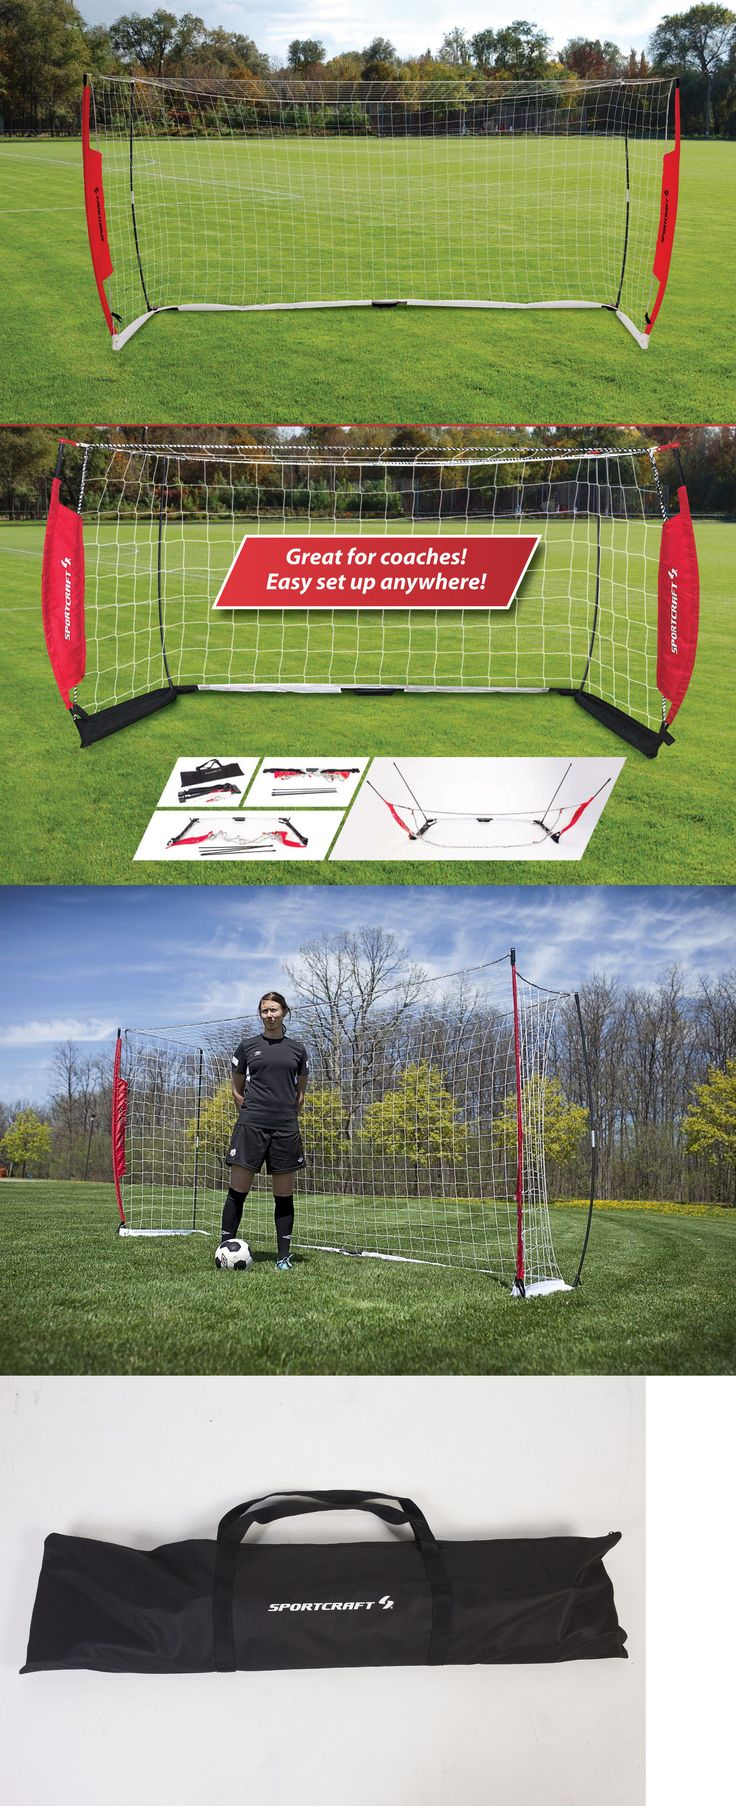 Goals and Nets 159180: New Sportcraft Flex Net Portable Outdoor Soccer Football Full Size Goal 12 X 6 -> BUY IT NOW ONLY: $119.99 on eBay!